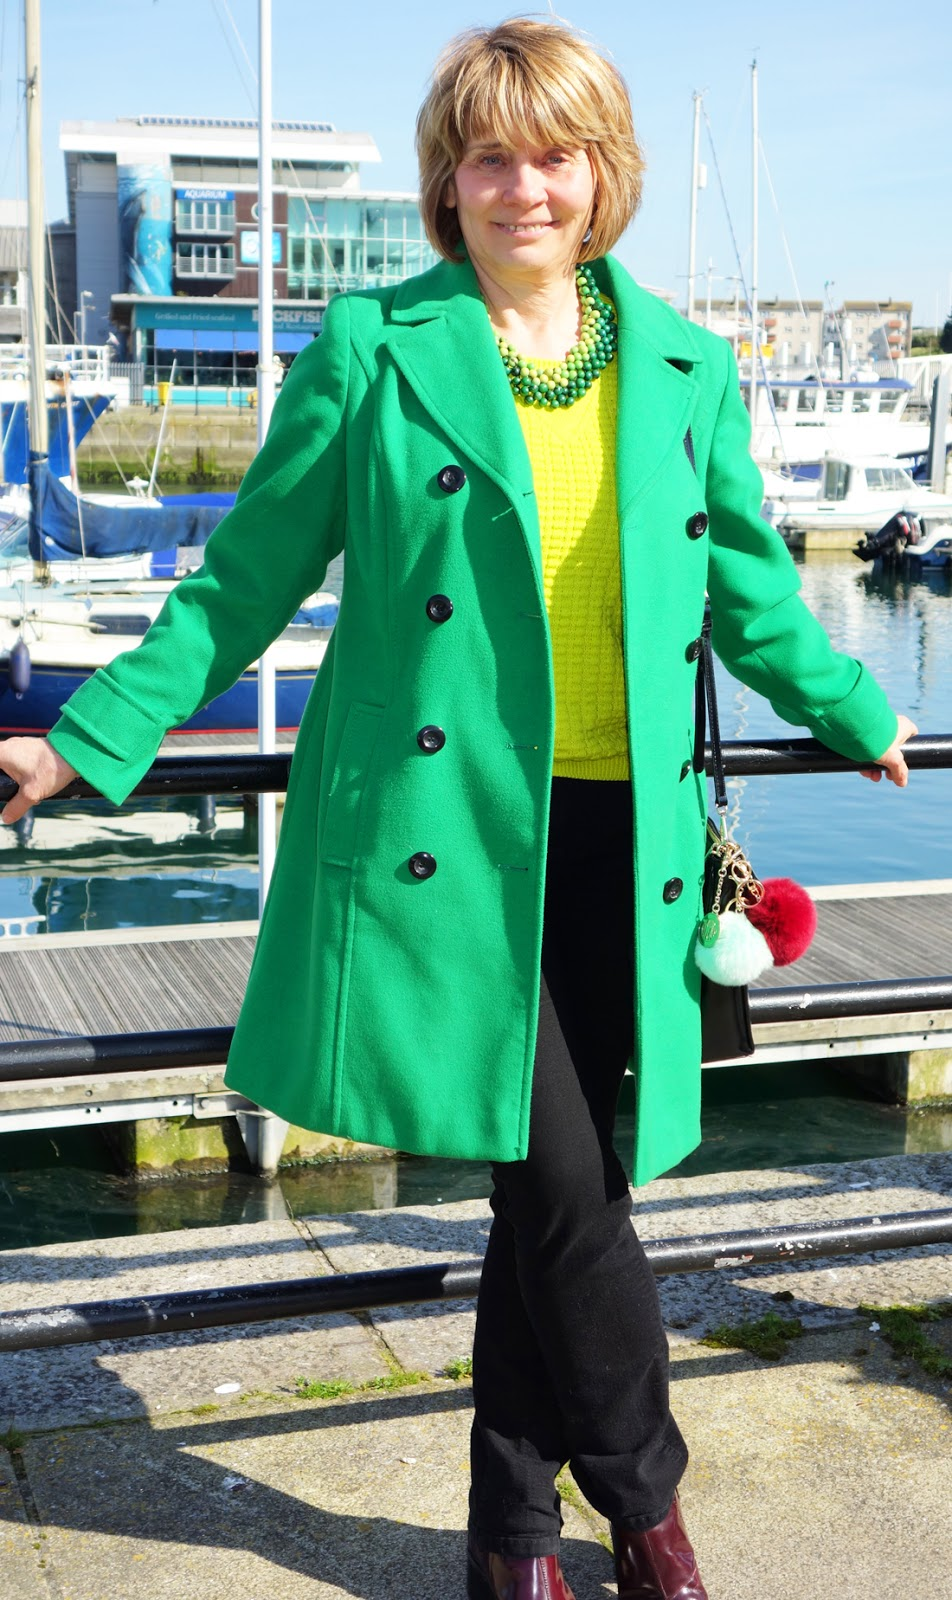 Gail Hanlon from Is This Mutton? on Plymouth's Barbican